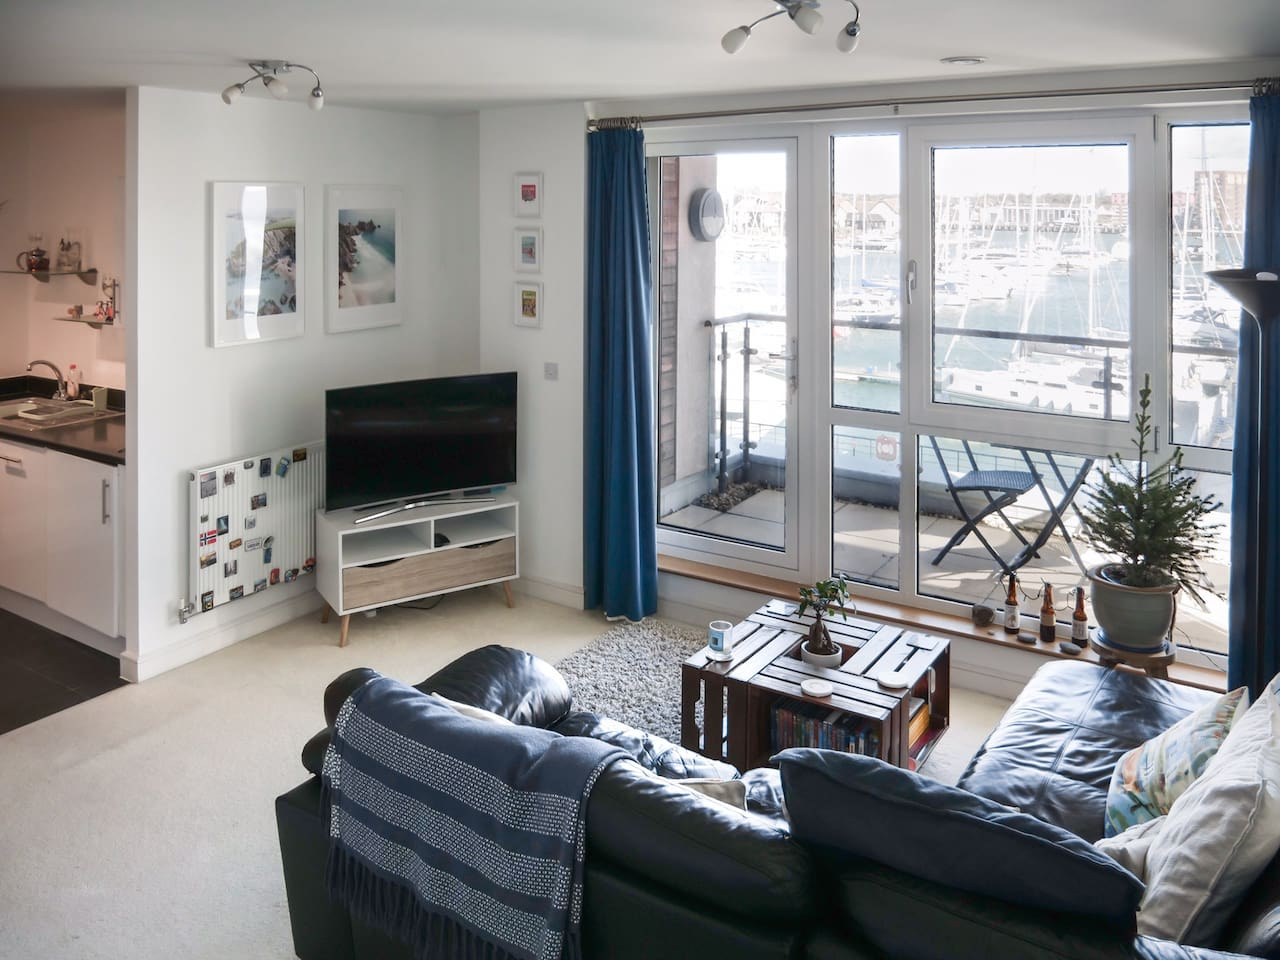 The large living space has uninterrupted views of the water (2/4).